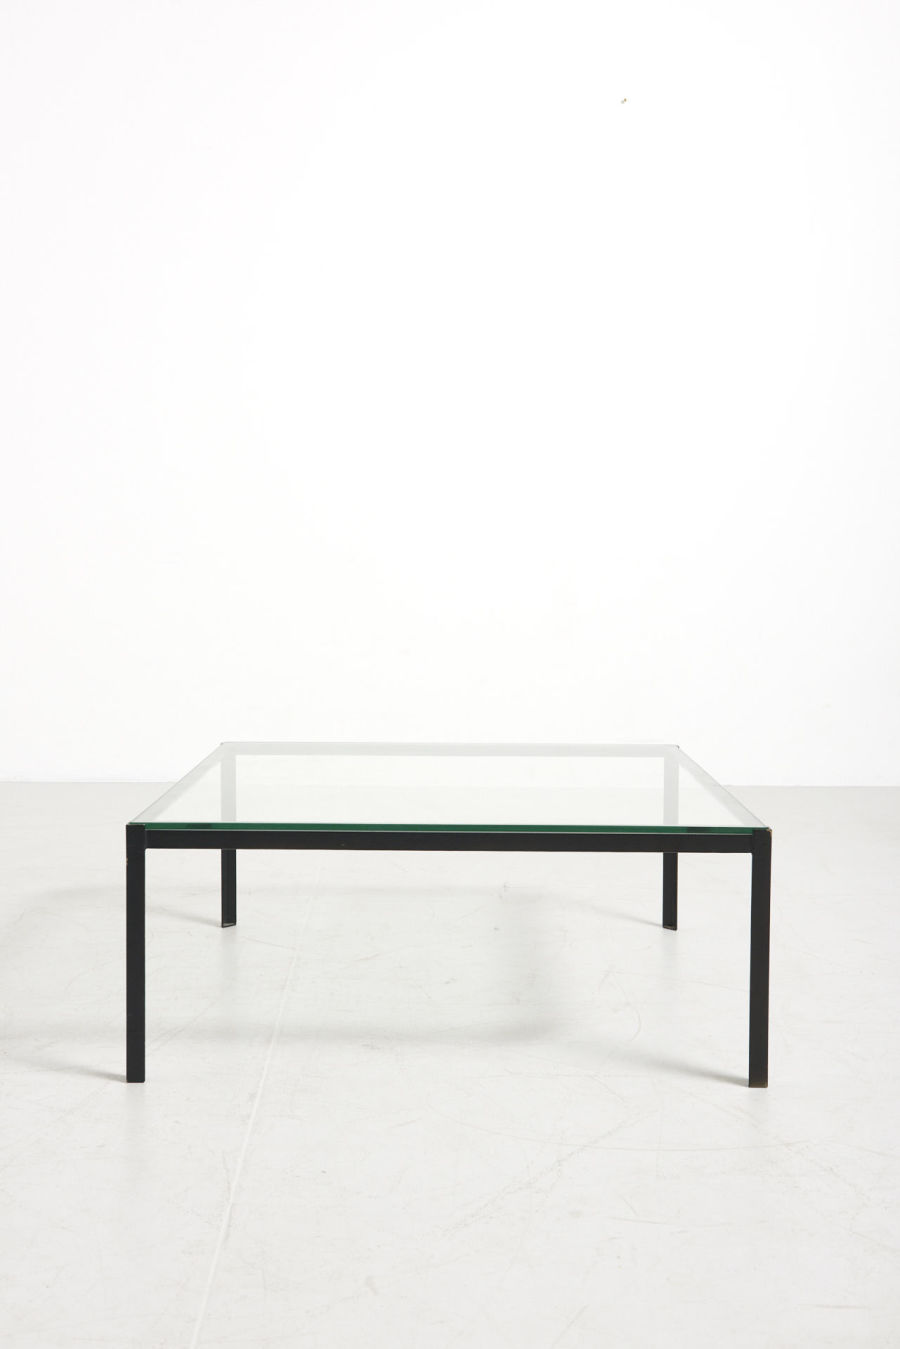 modestfurniture-vintage-2753-low-table-artimeta02